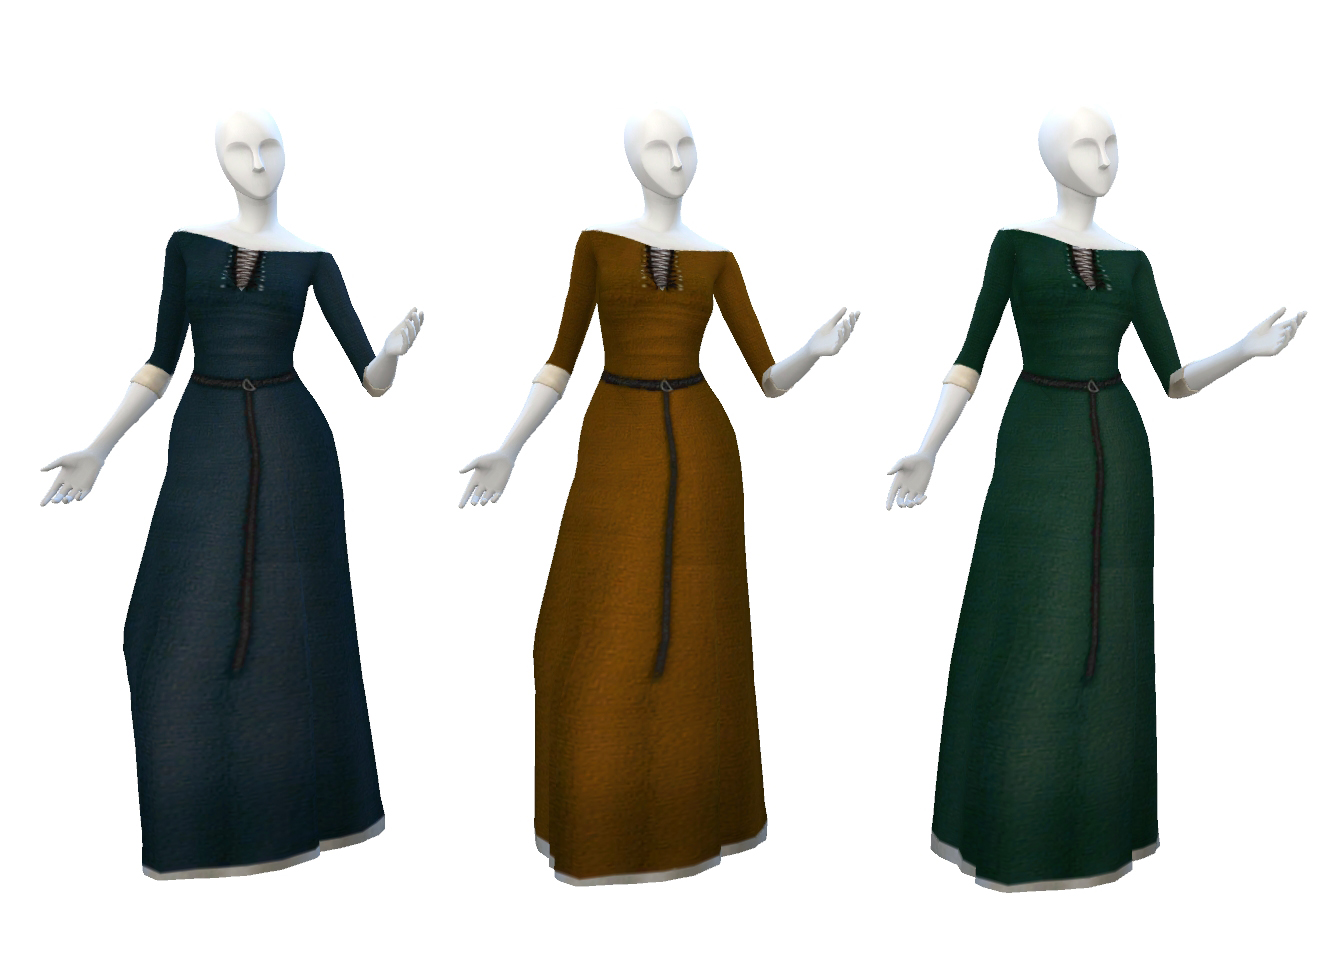 Everyday Medieval Dress in 11 Colors by Historical Sims Life